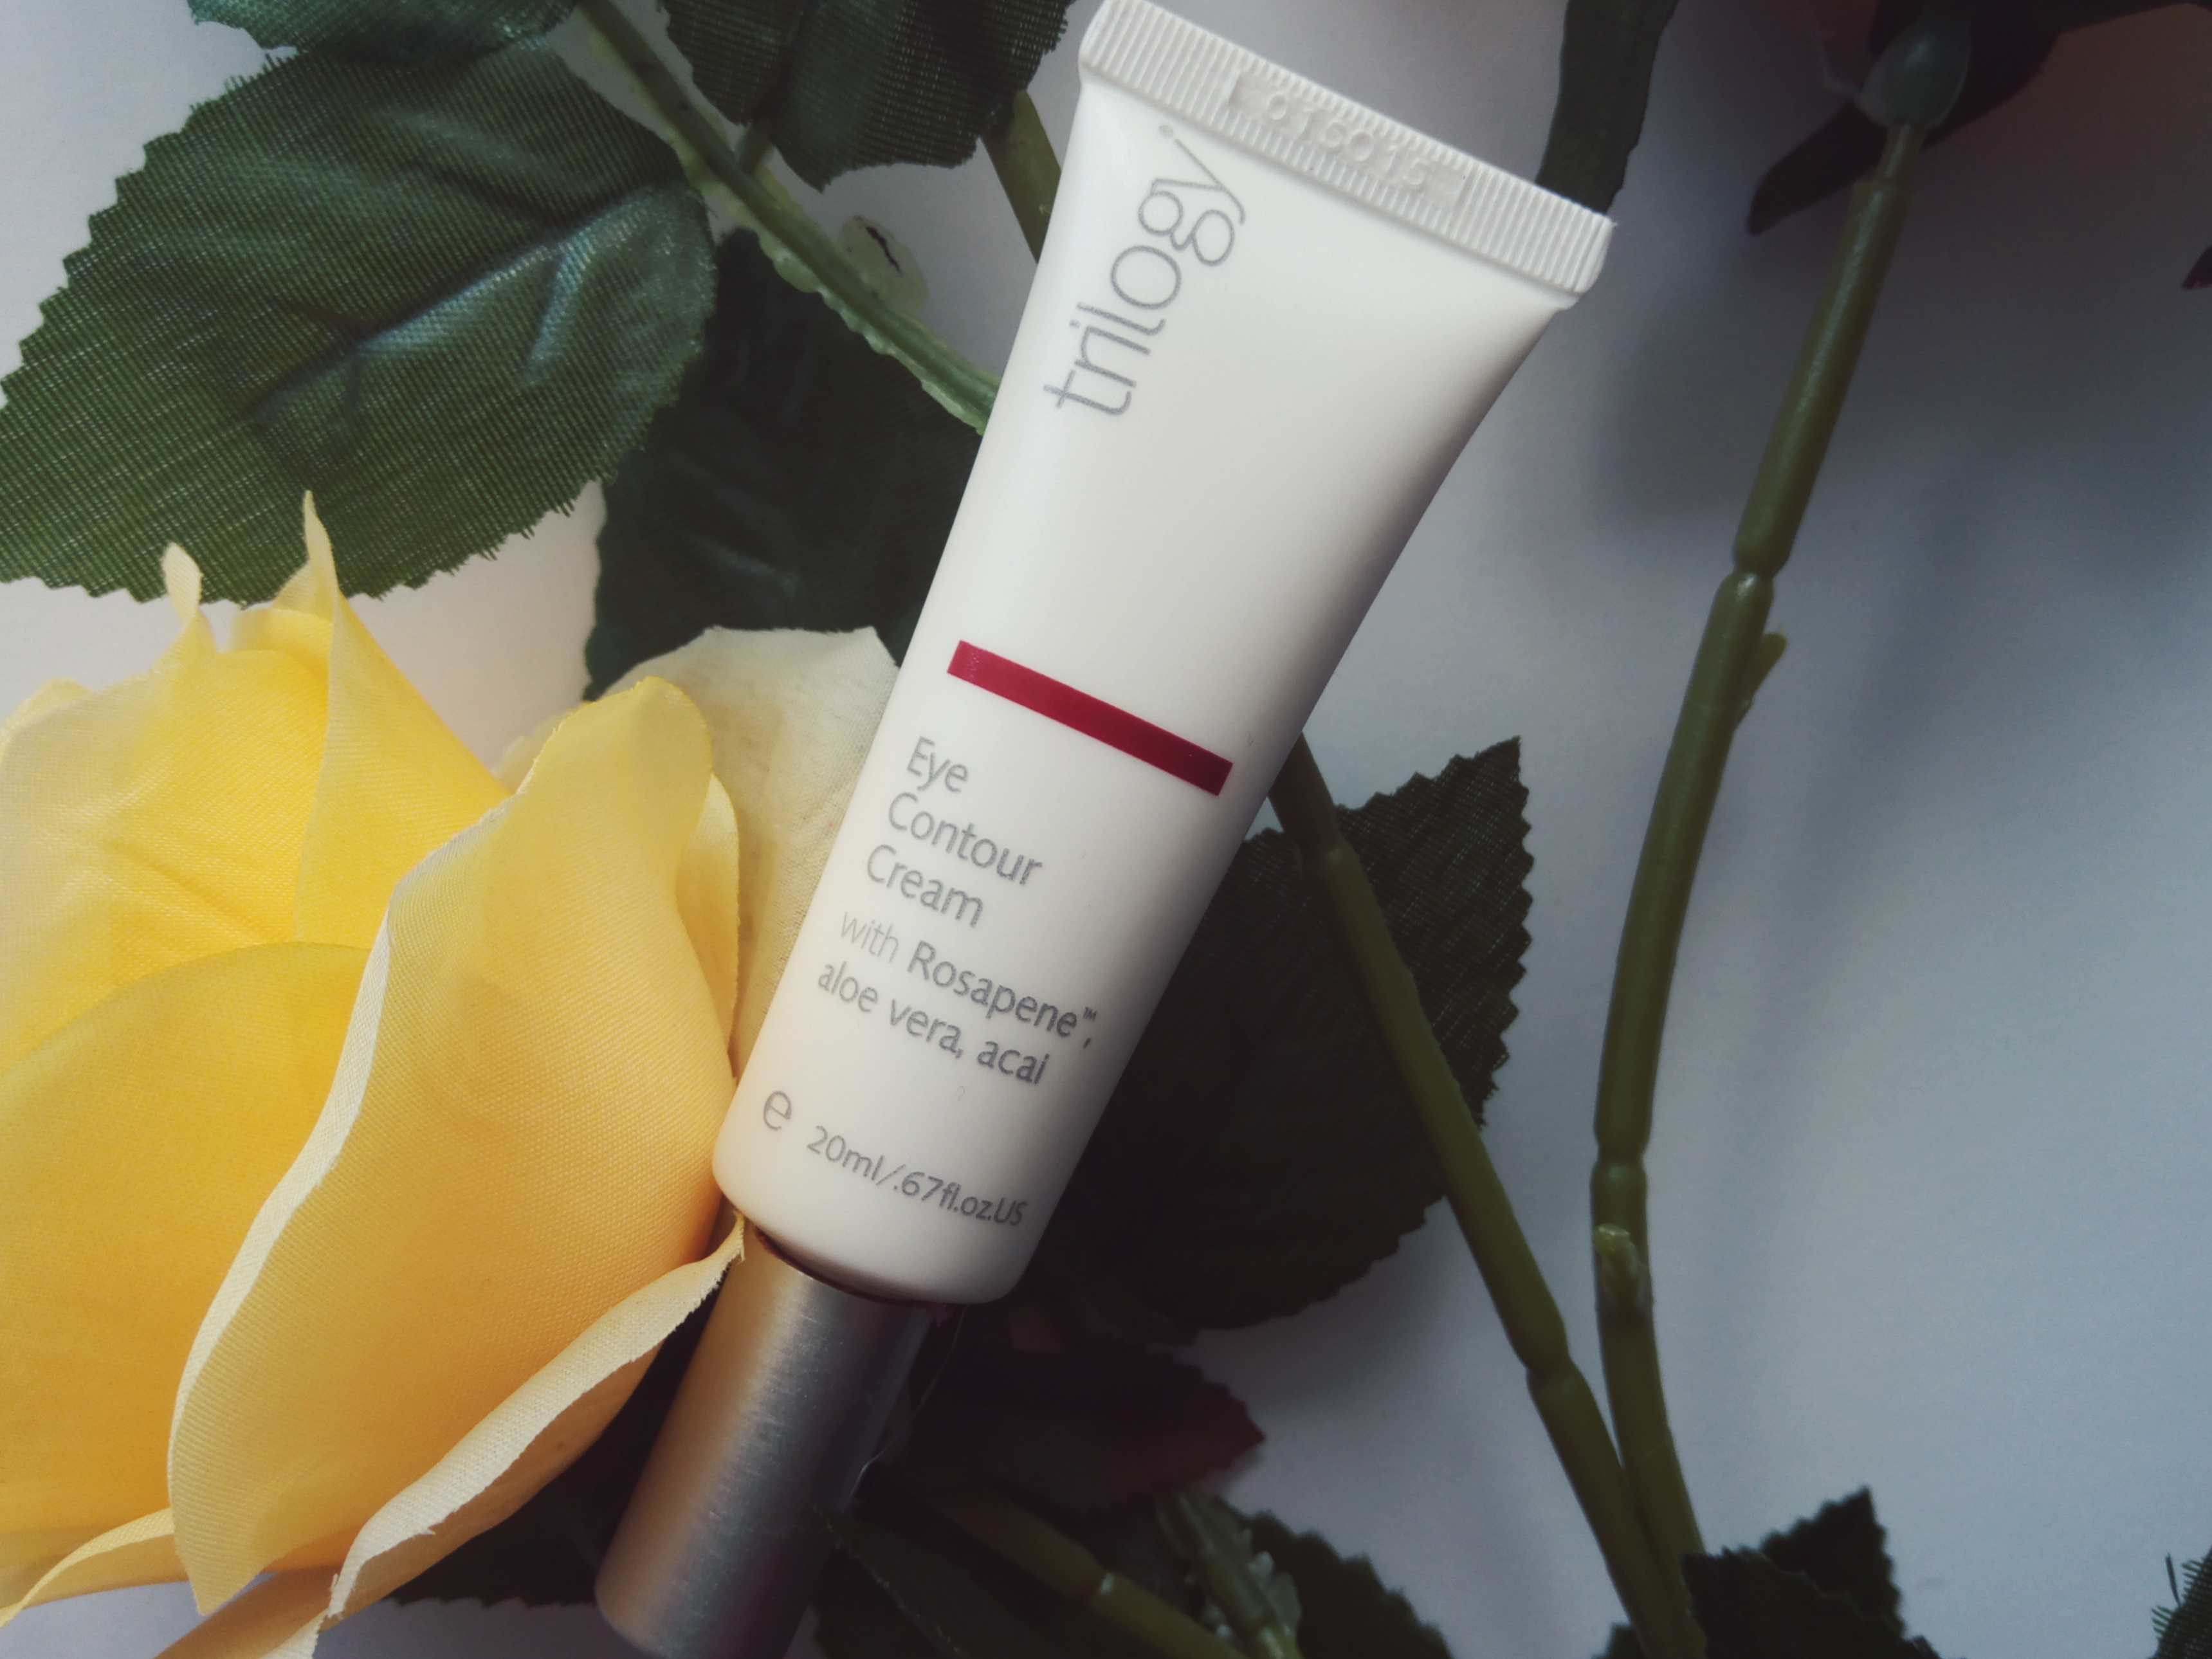 Trilogy Eye Contour Cream | Review